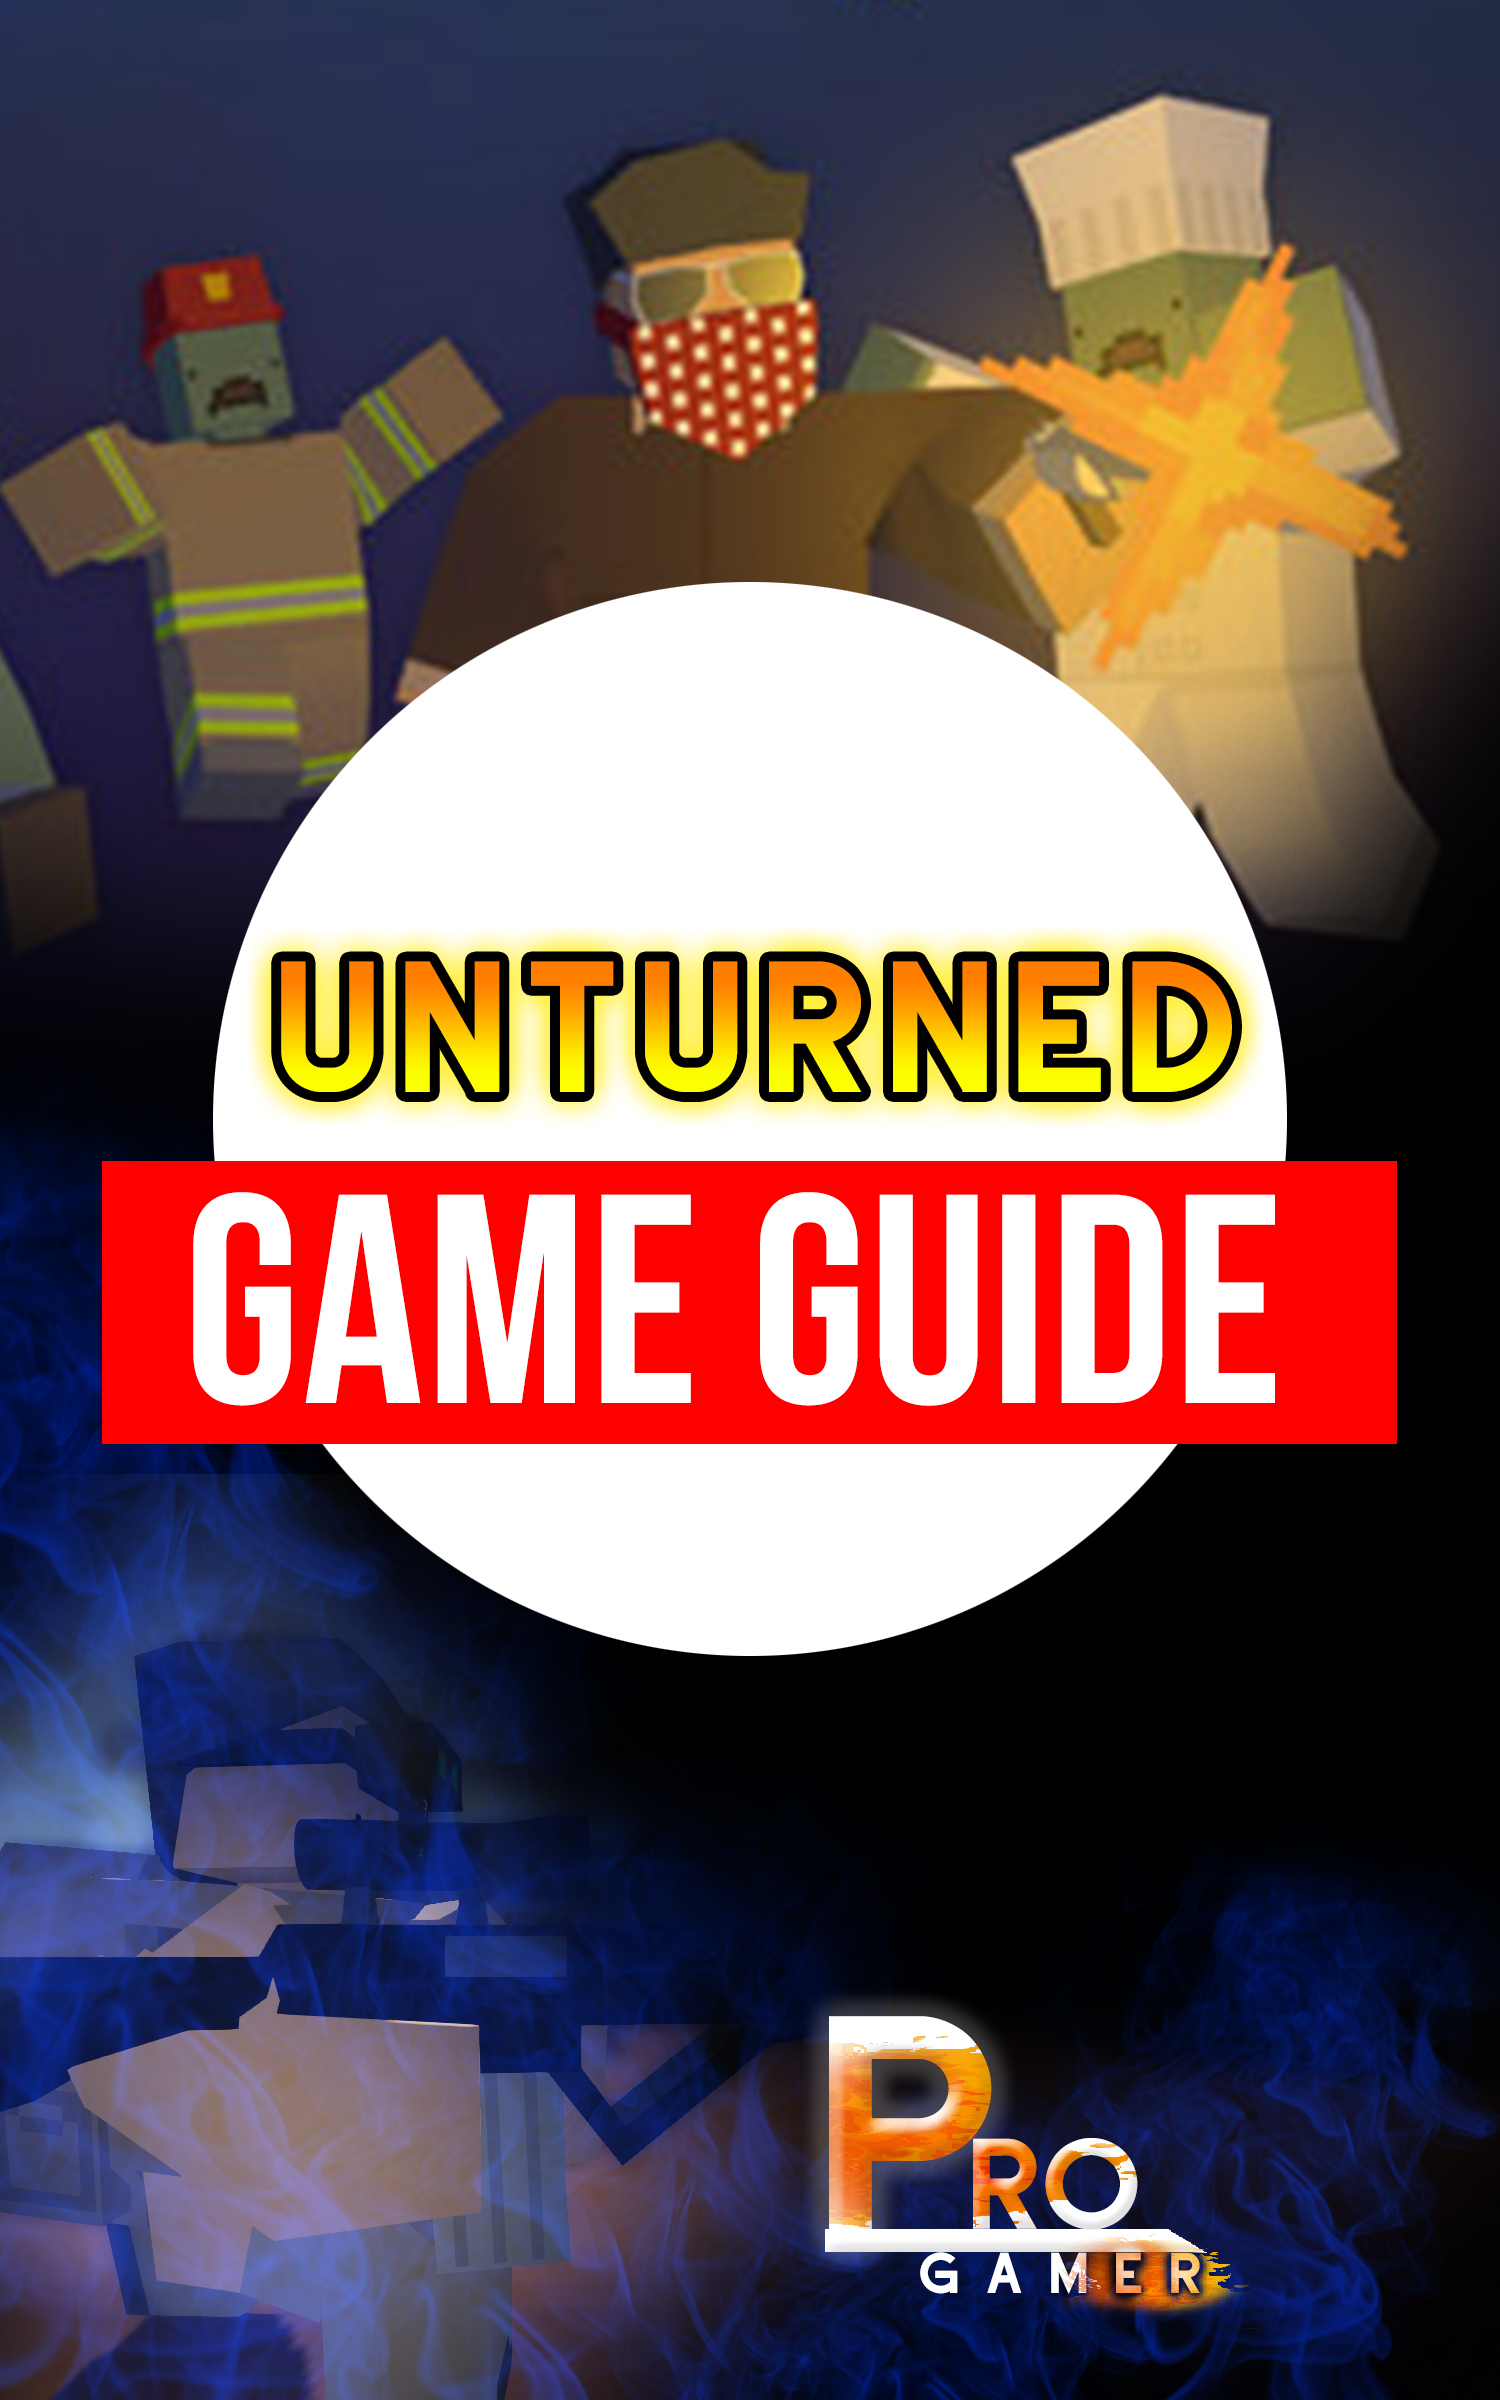 Unturned Game Guide, an Ebook by Pro Gamer